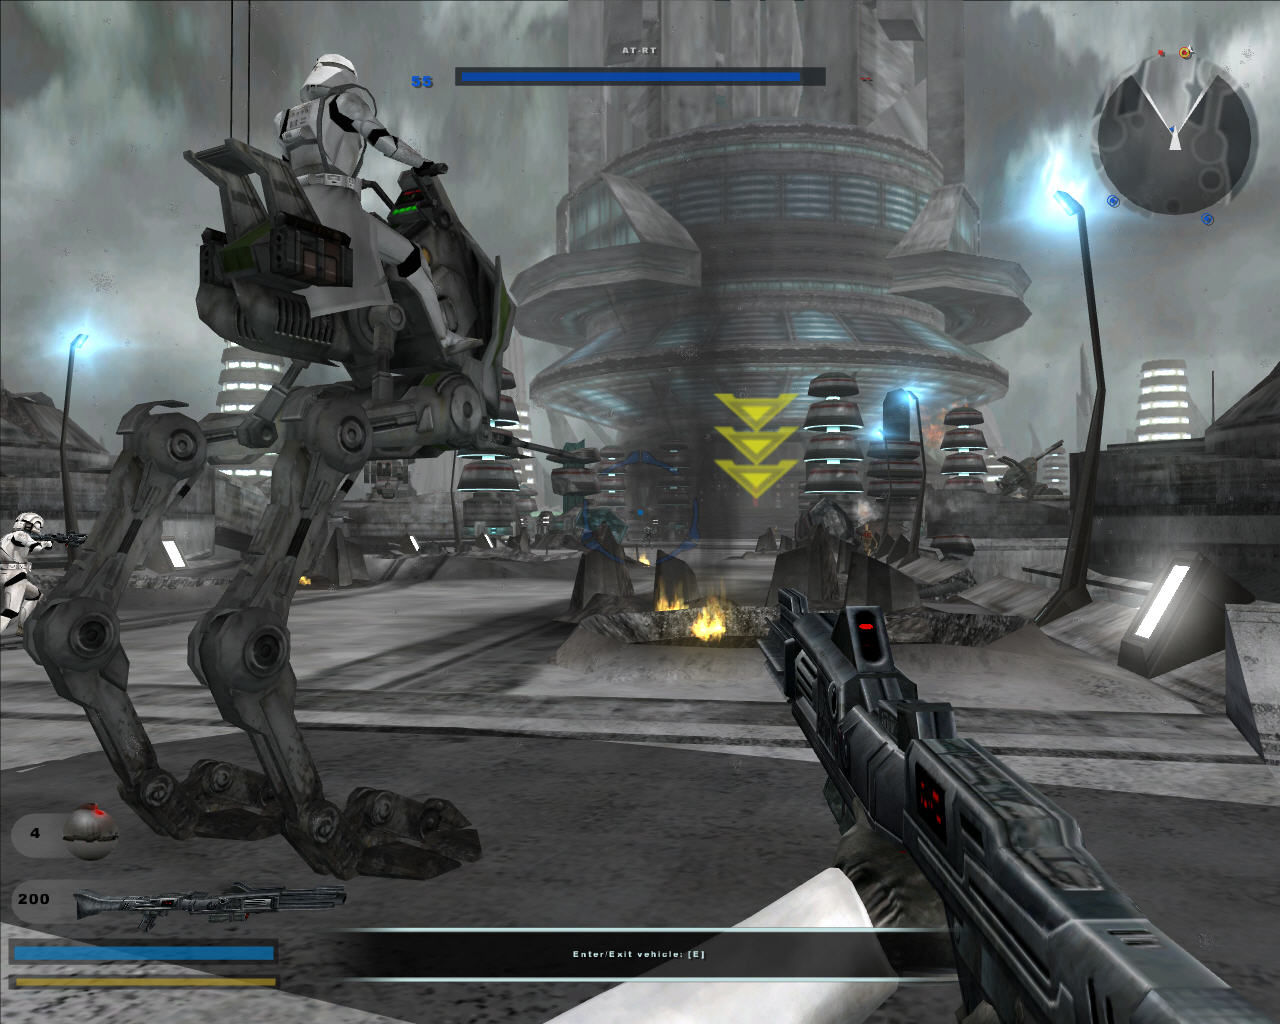 Old] how to download star wars battlefront ii 2005 (pc) free.